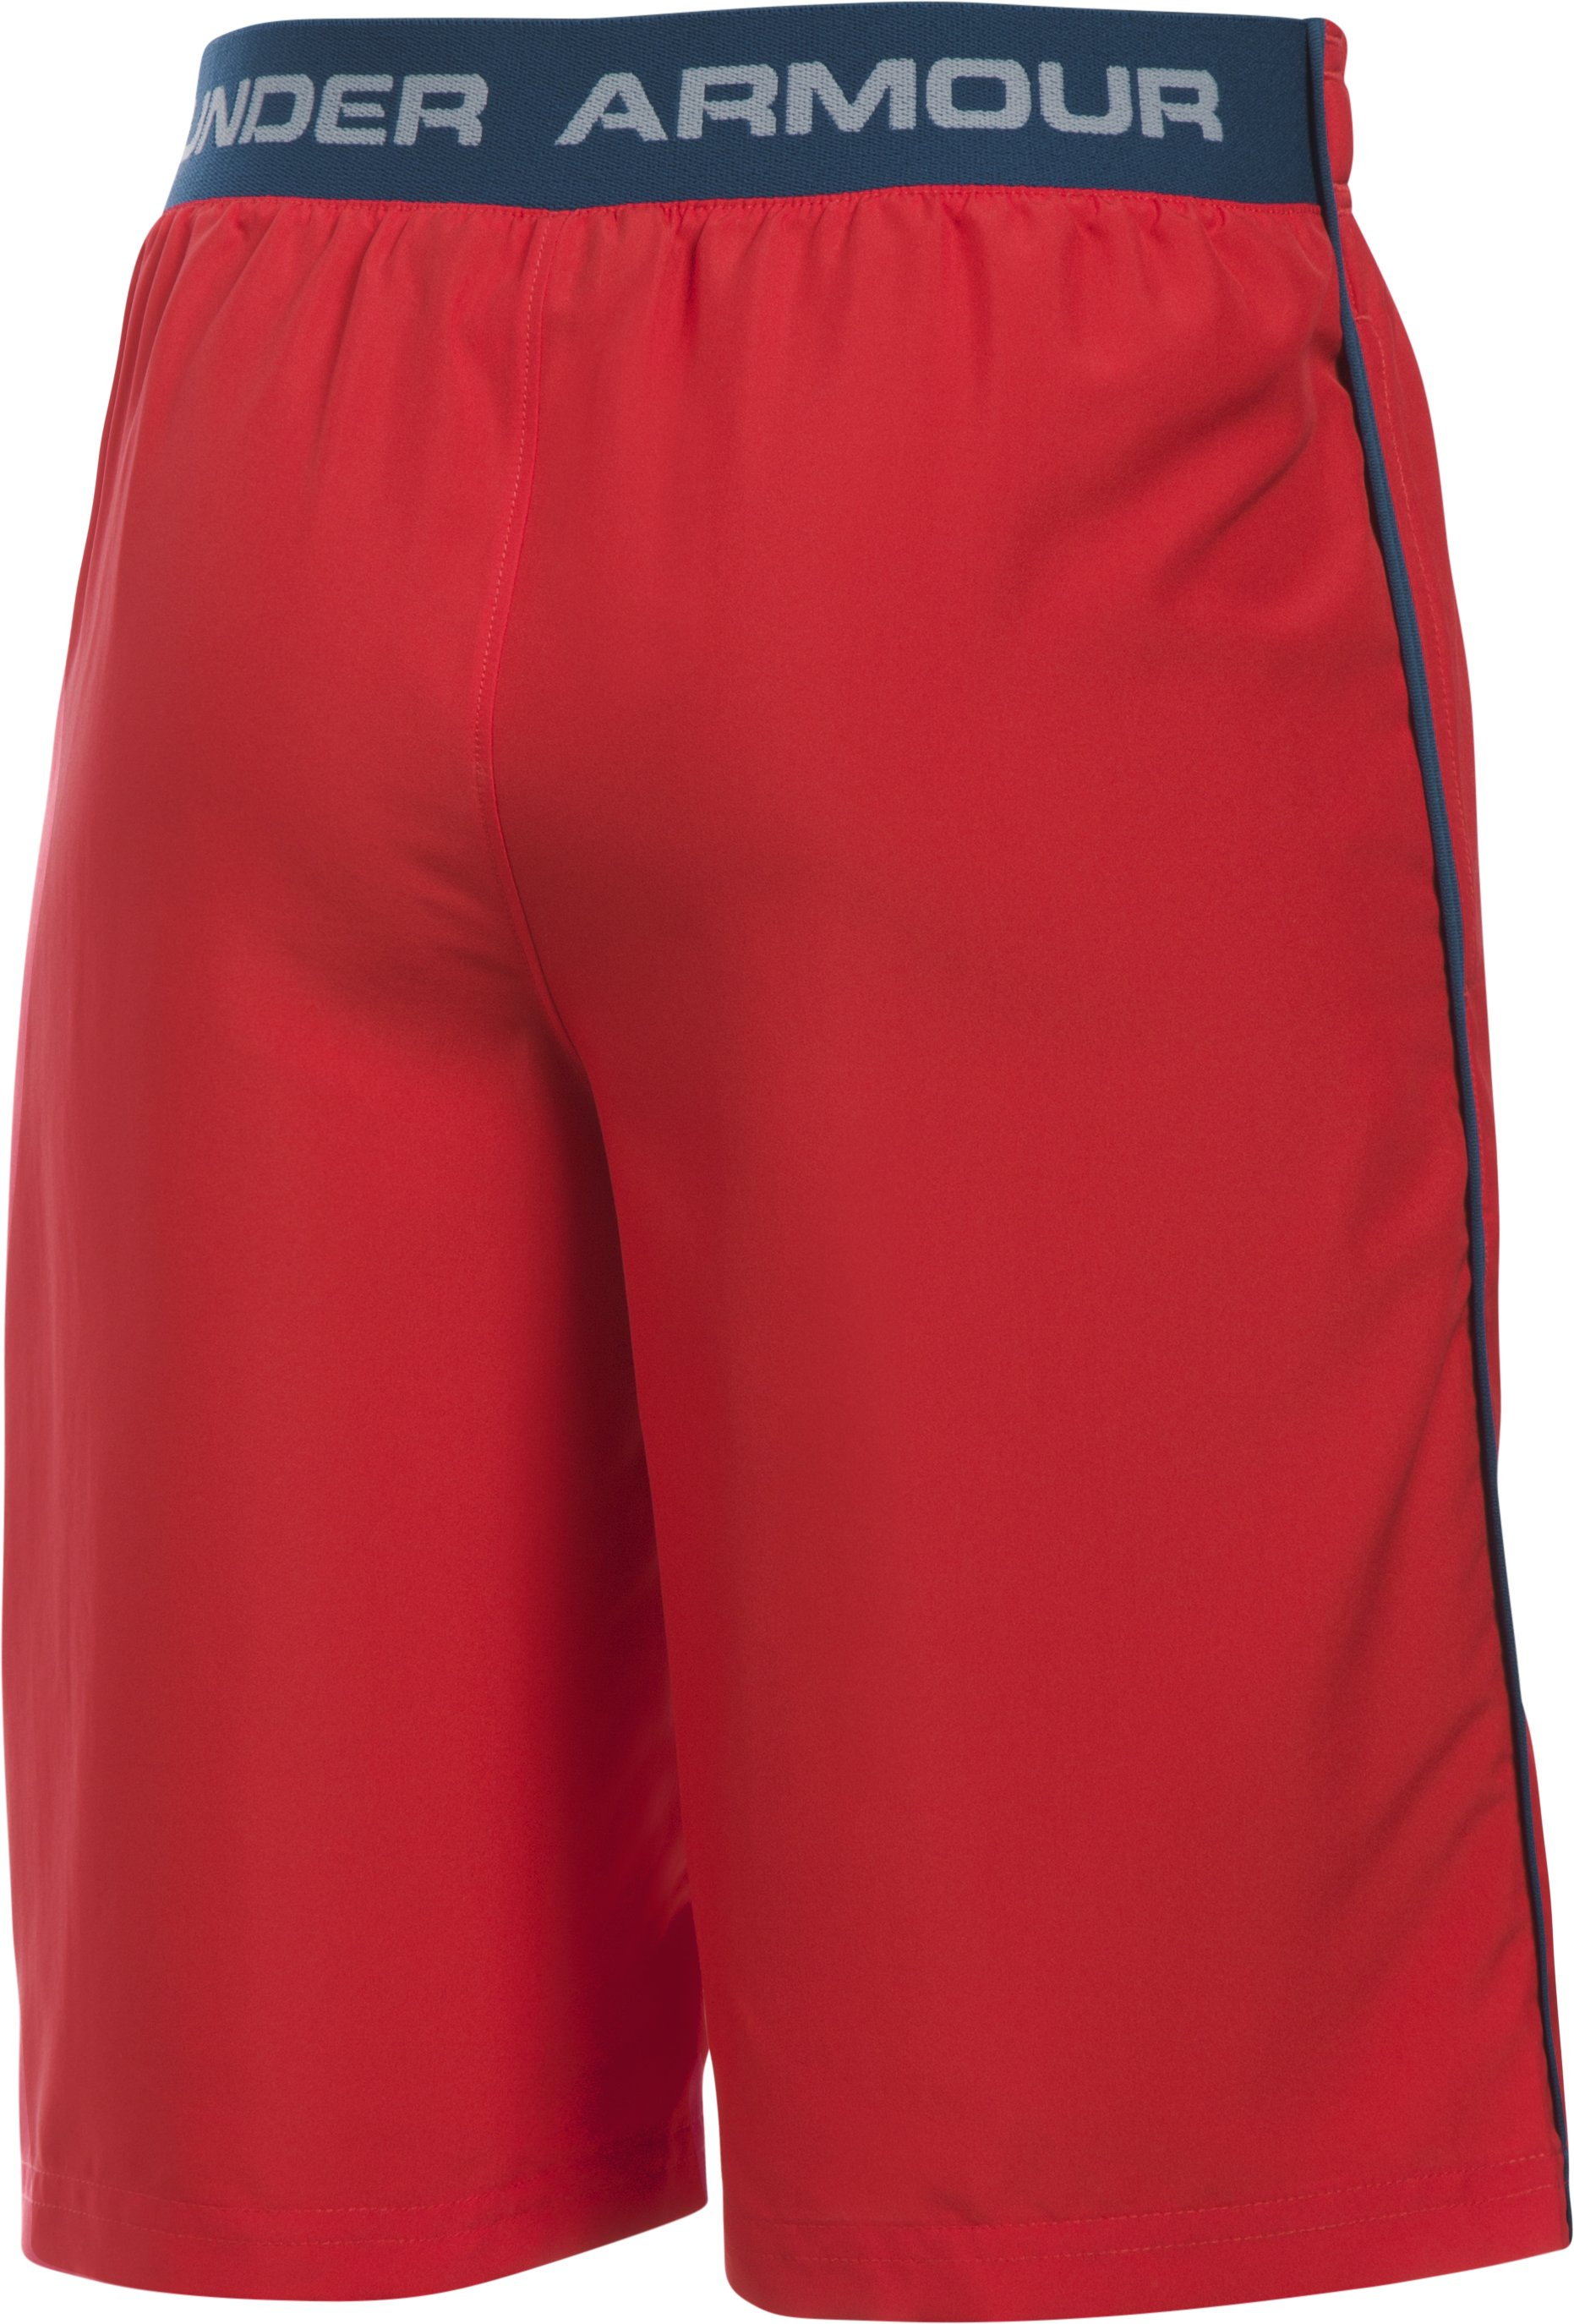 Boys' UA Freedom Edge Shorts, Red,